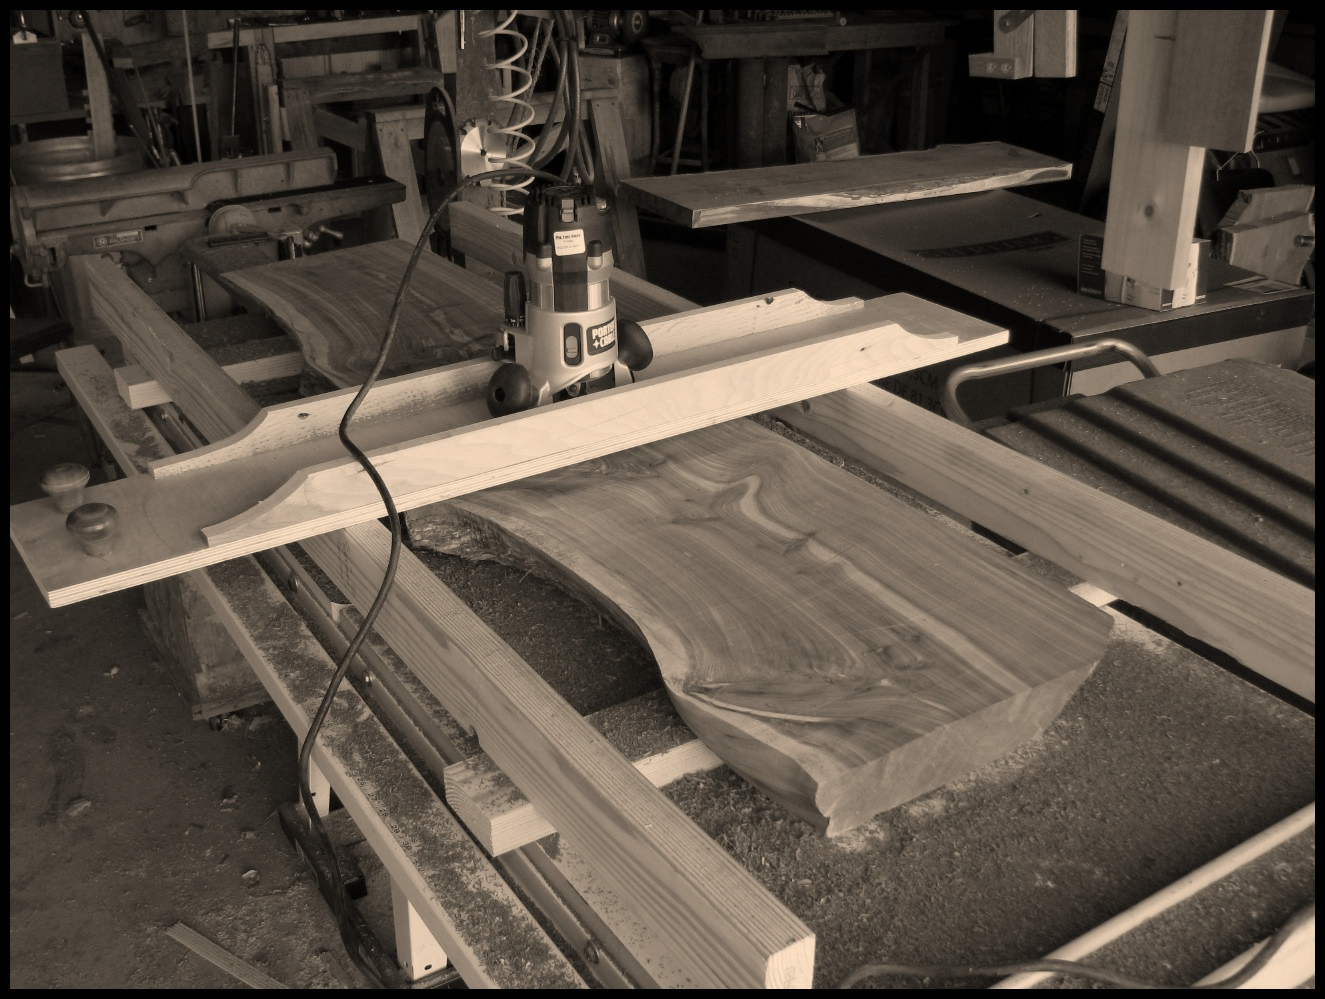 Jig For Flattening Slabs The School Of The Transfer Of